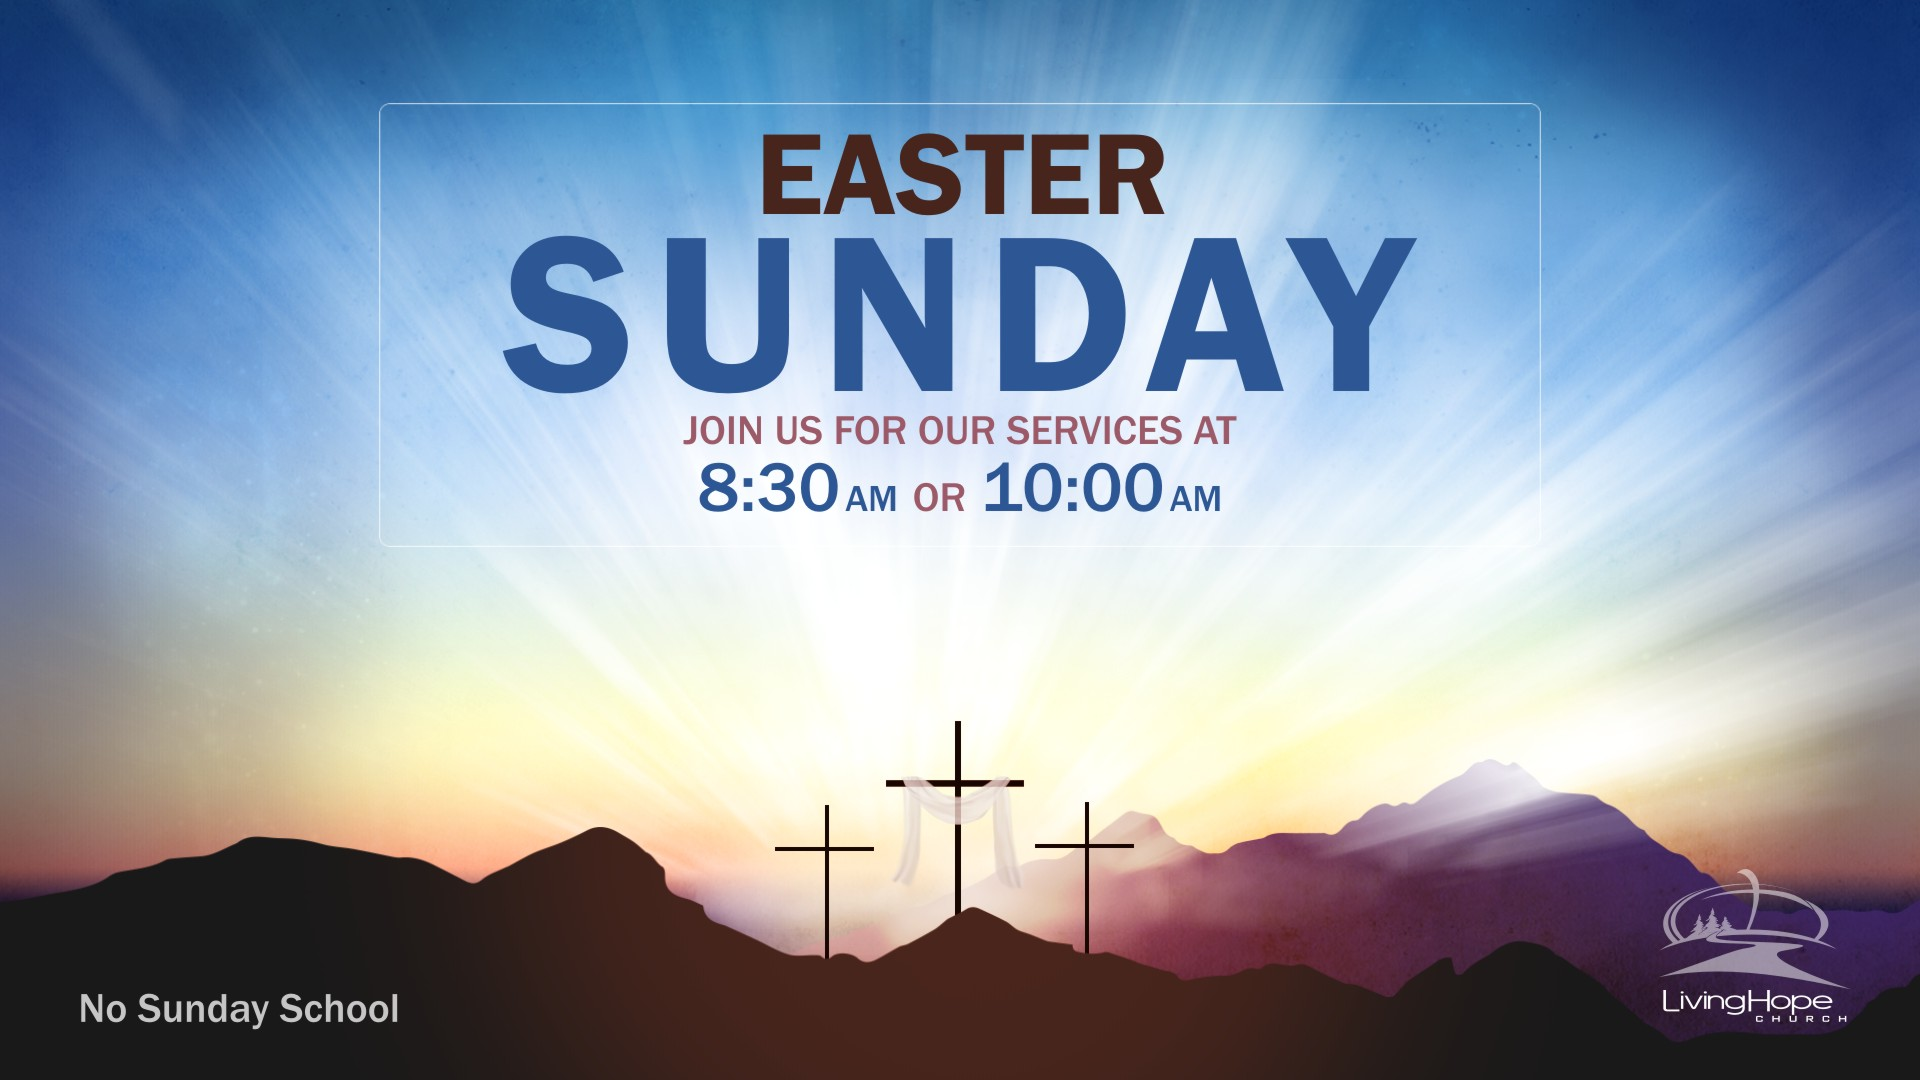 Easter Services, Living Hope Church, April 21 2019